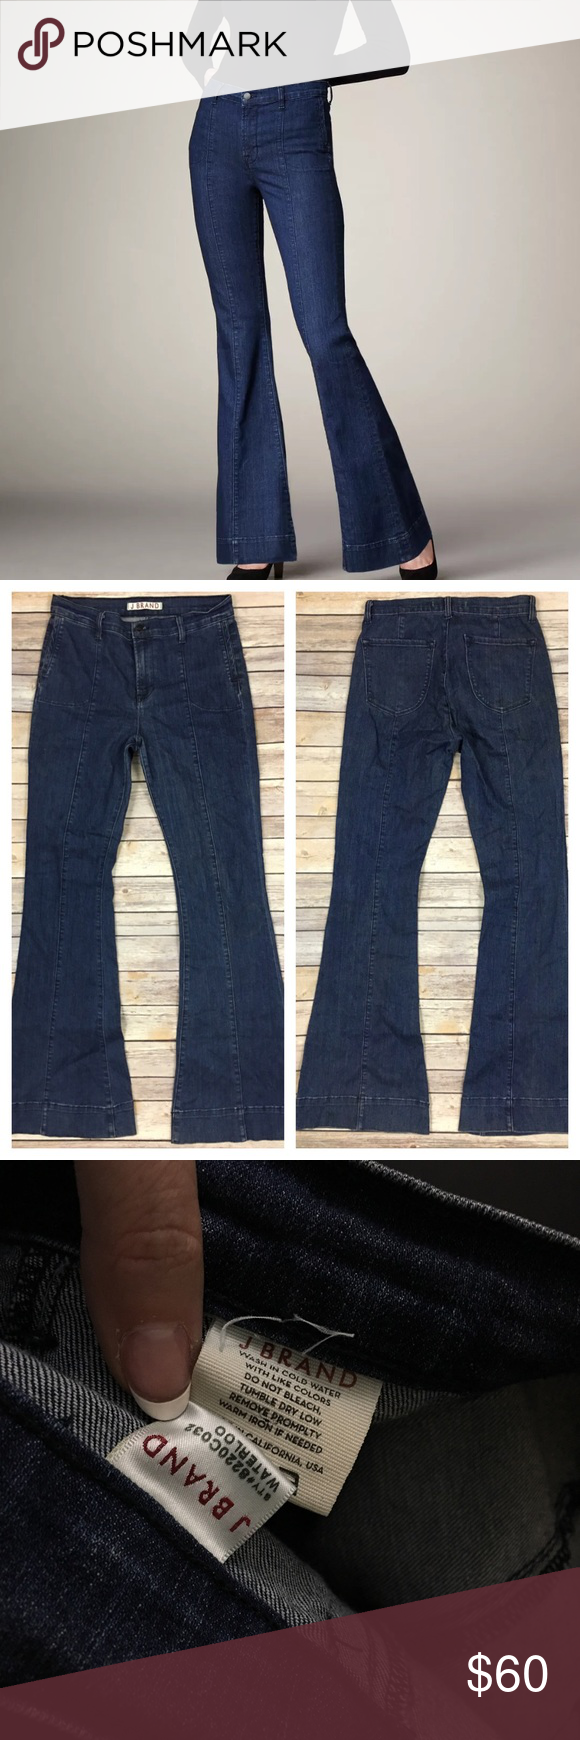 "J Brand Loni Waterloo High Rise Flared Jeans 30x35 Tag Size - Unknown Waist Measured Across - 15.5"" Inseam - 35"" Rise - 11"" Good Used Condition.  The size tag has been removed.  Please note measurements to ensure proper fit. J Brand Jeans Flare & Wide Leg"